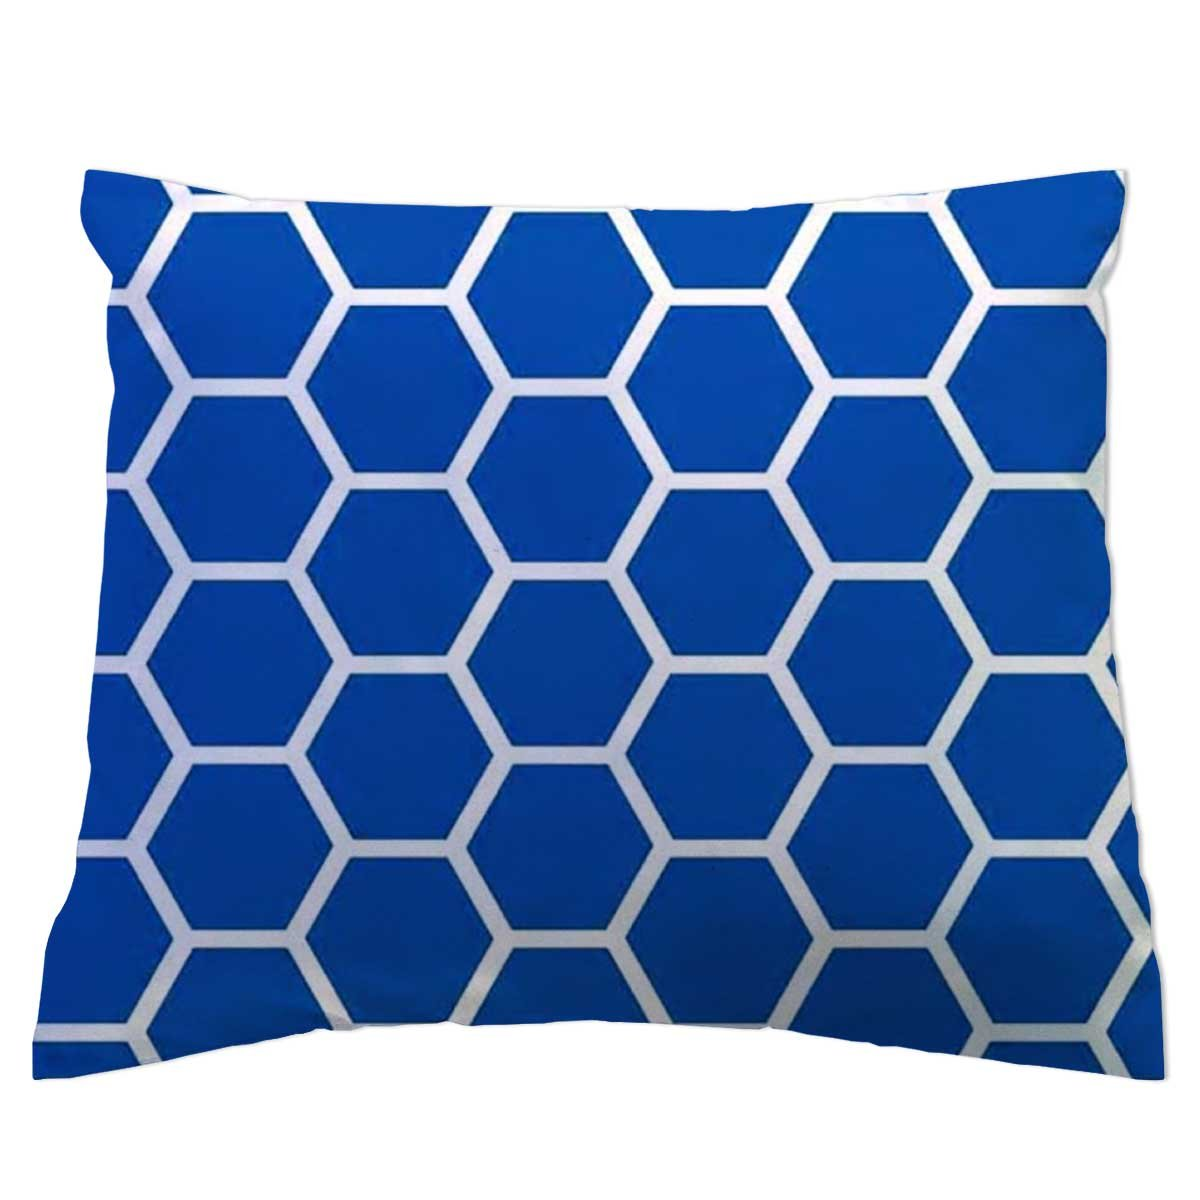 SheetWorld - Toddler Pillowcase Hypoallergenic Made in USA - Royal Blue Honeycomb 13 x 17